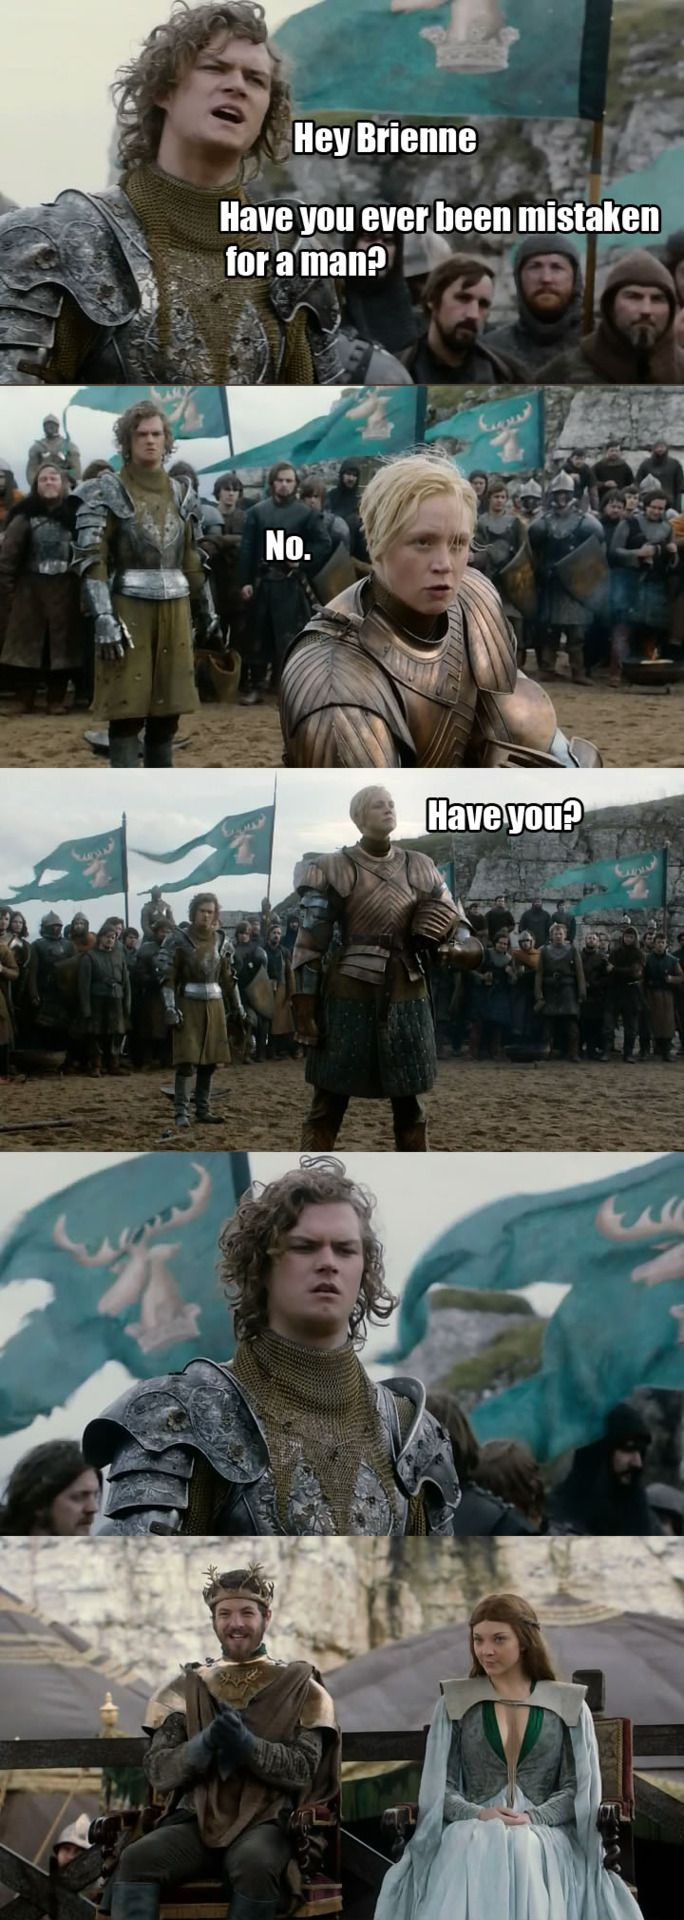 Hey Loras, I think your lady bits are showing (Brienne of Tarth, Loras Tyrell)